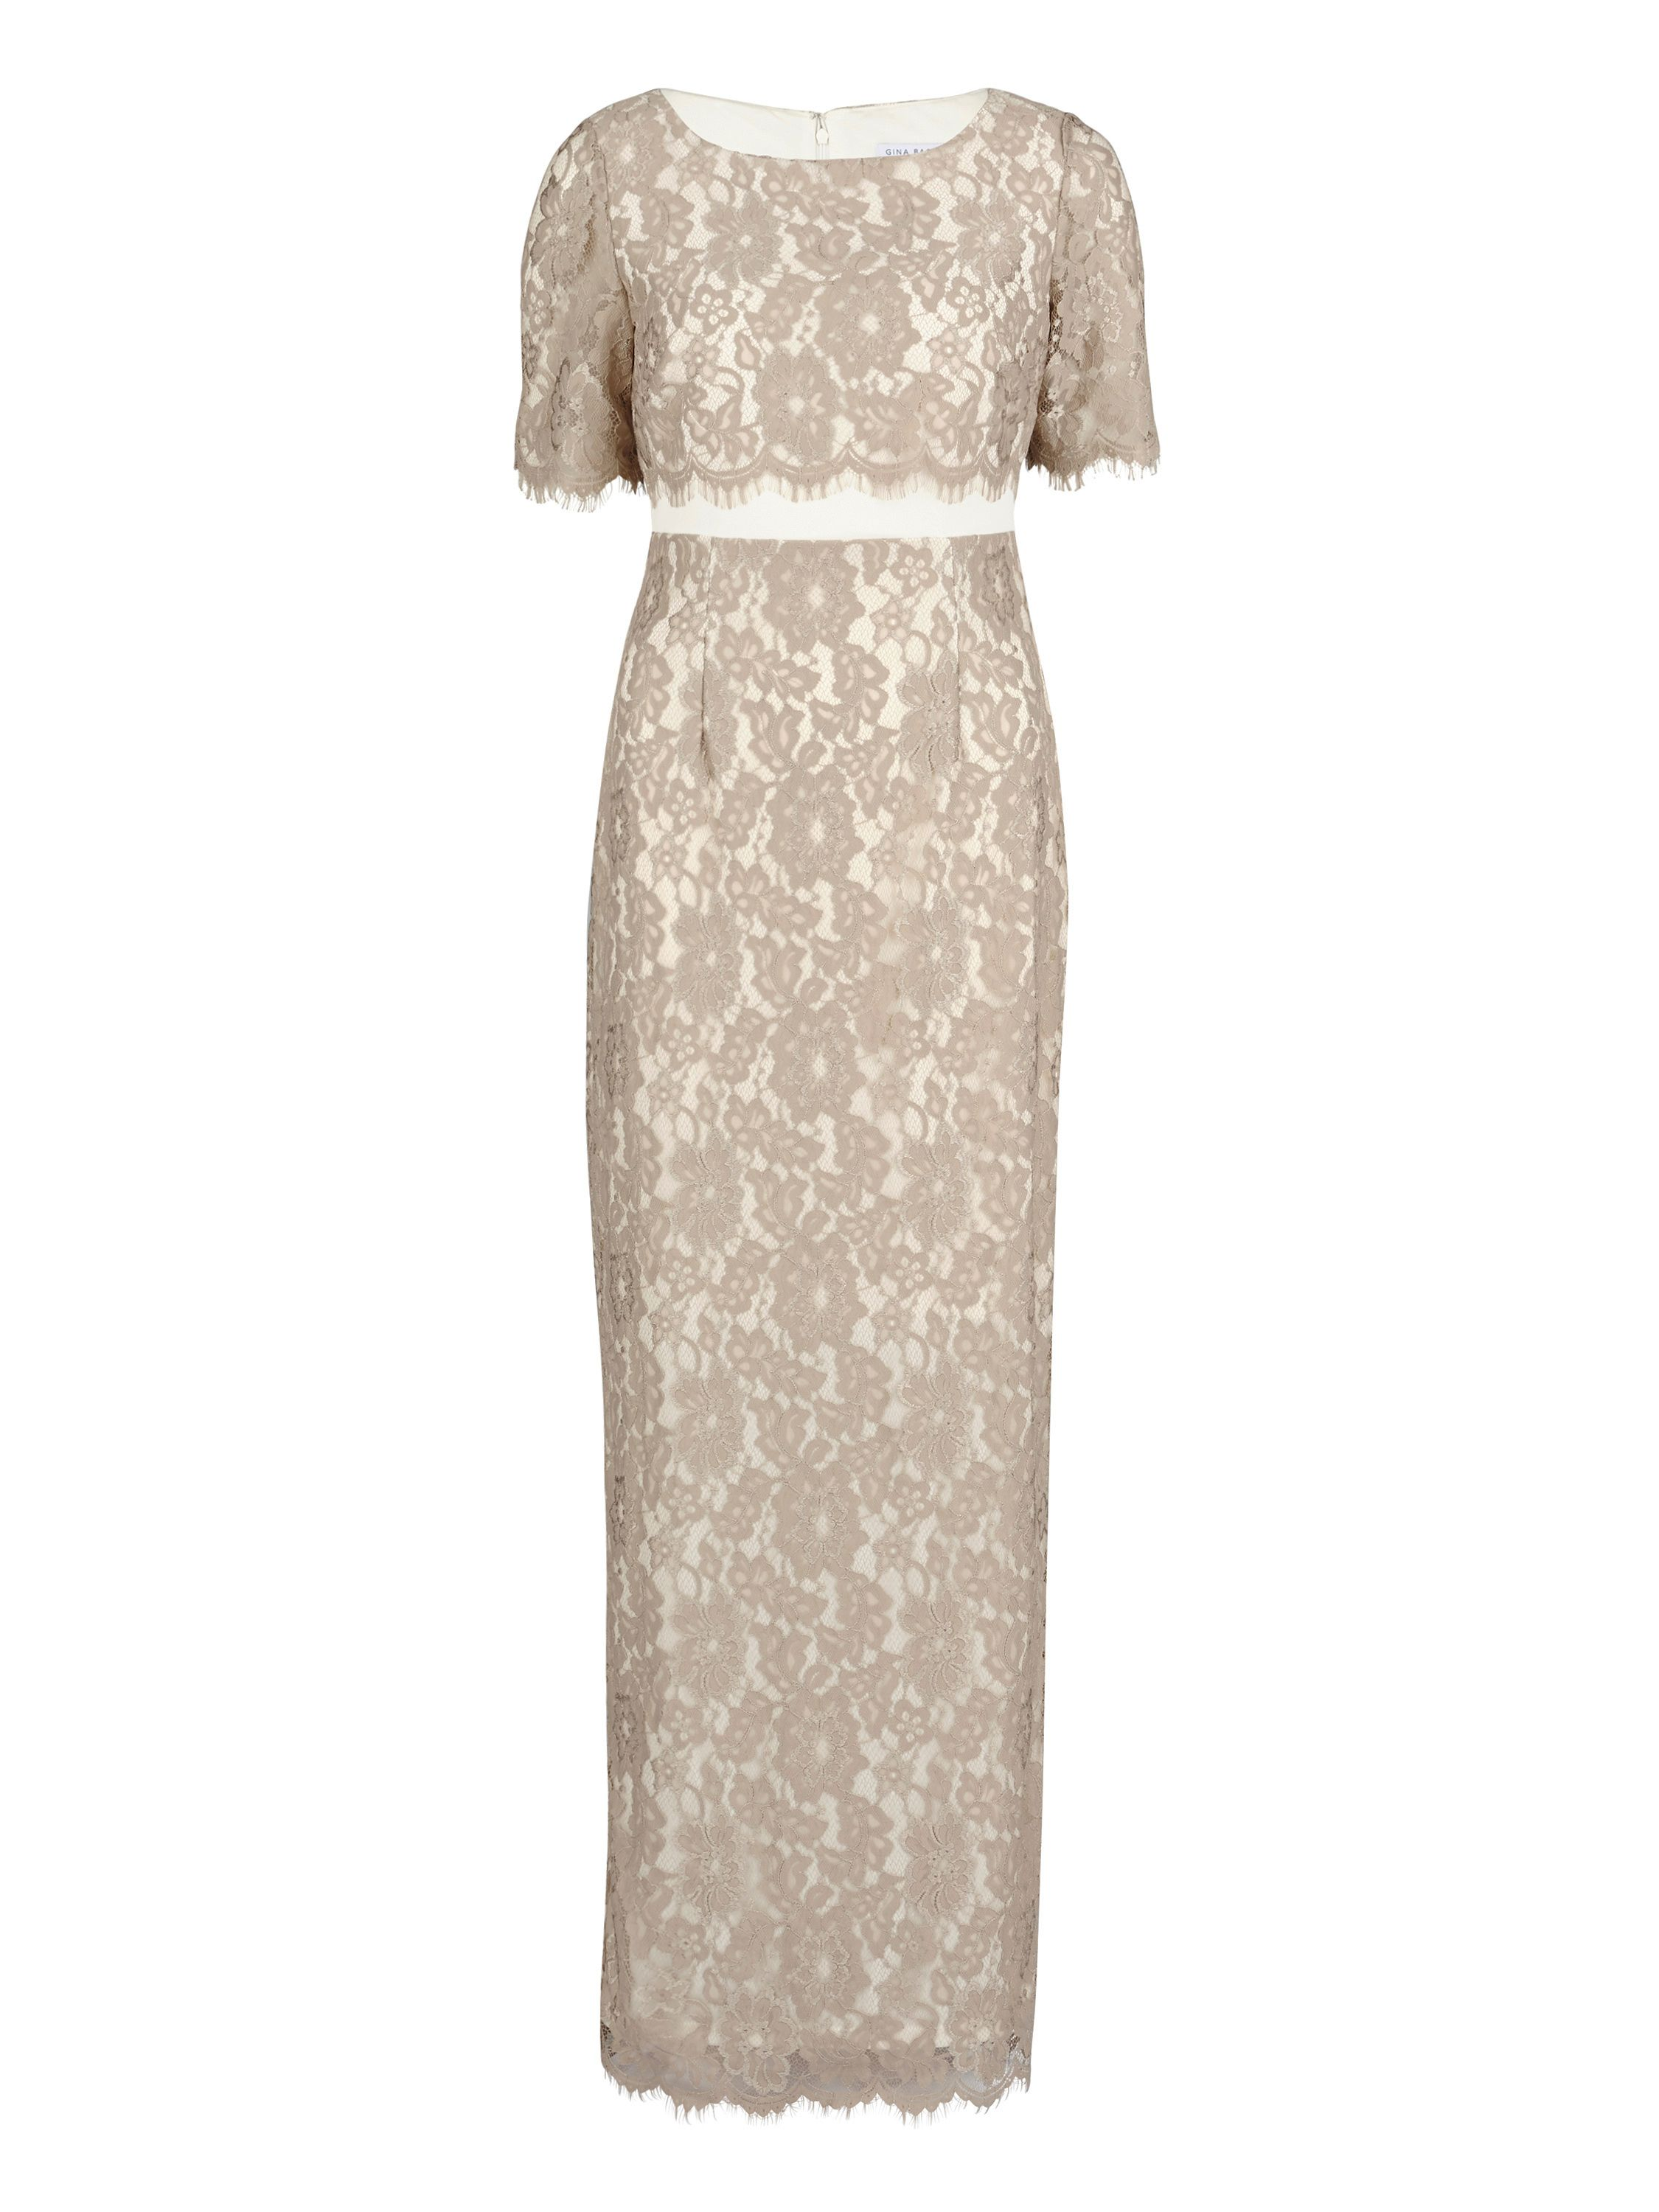 Gina Bacconi Scallop flower lace on crepe maxi dress, White